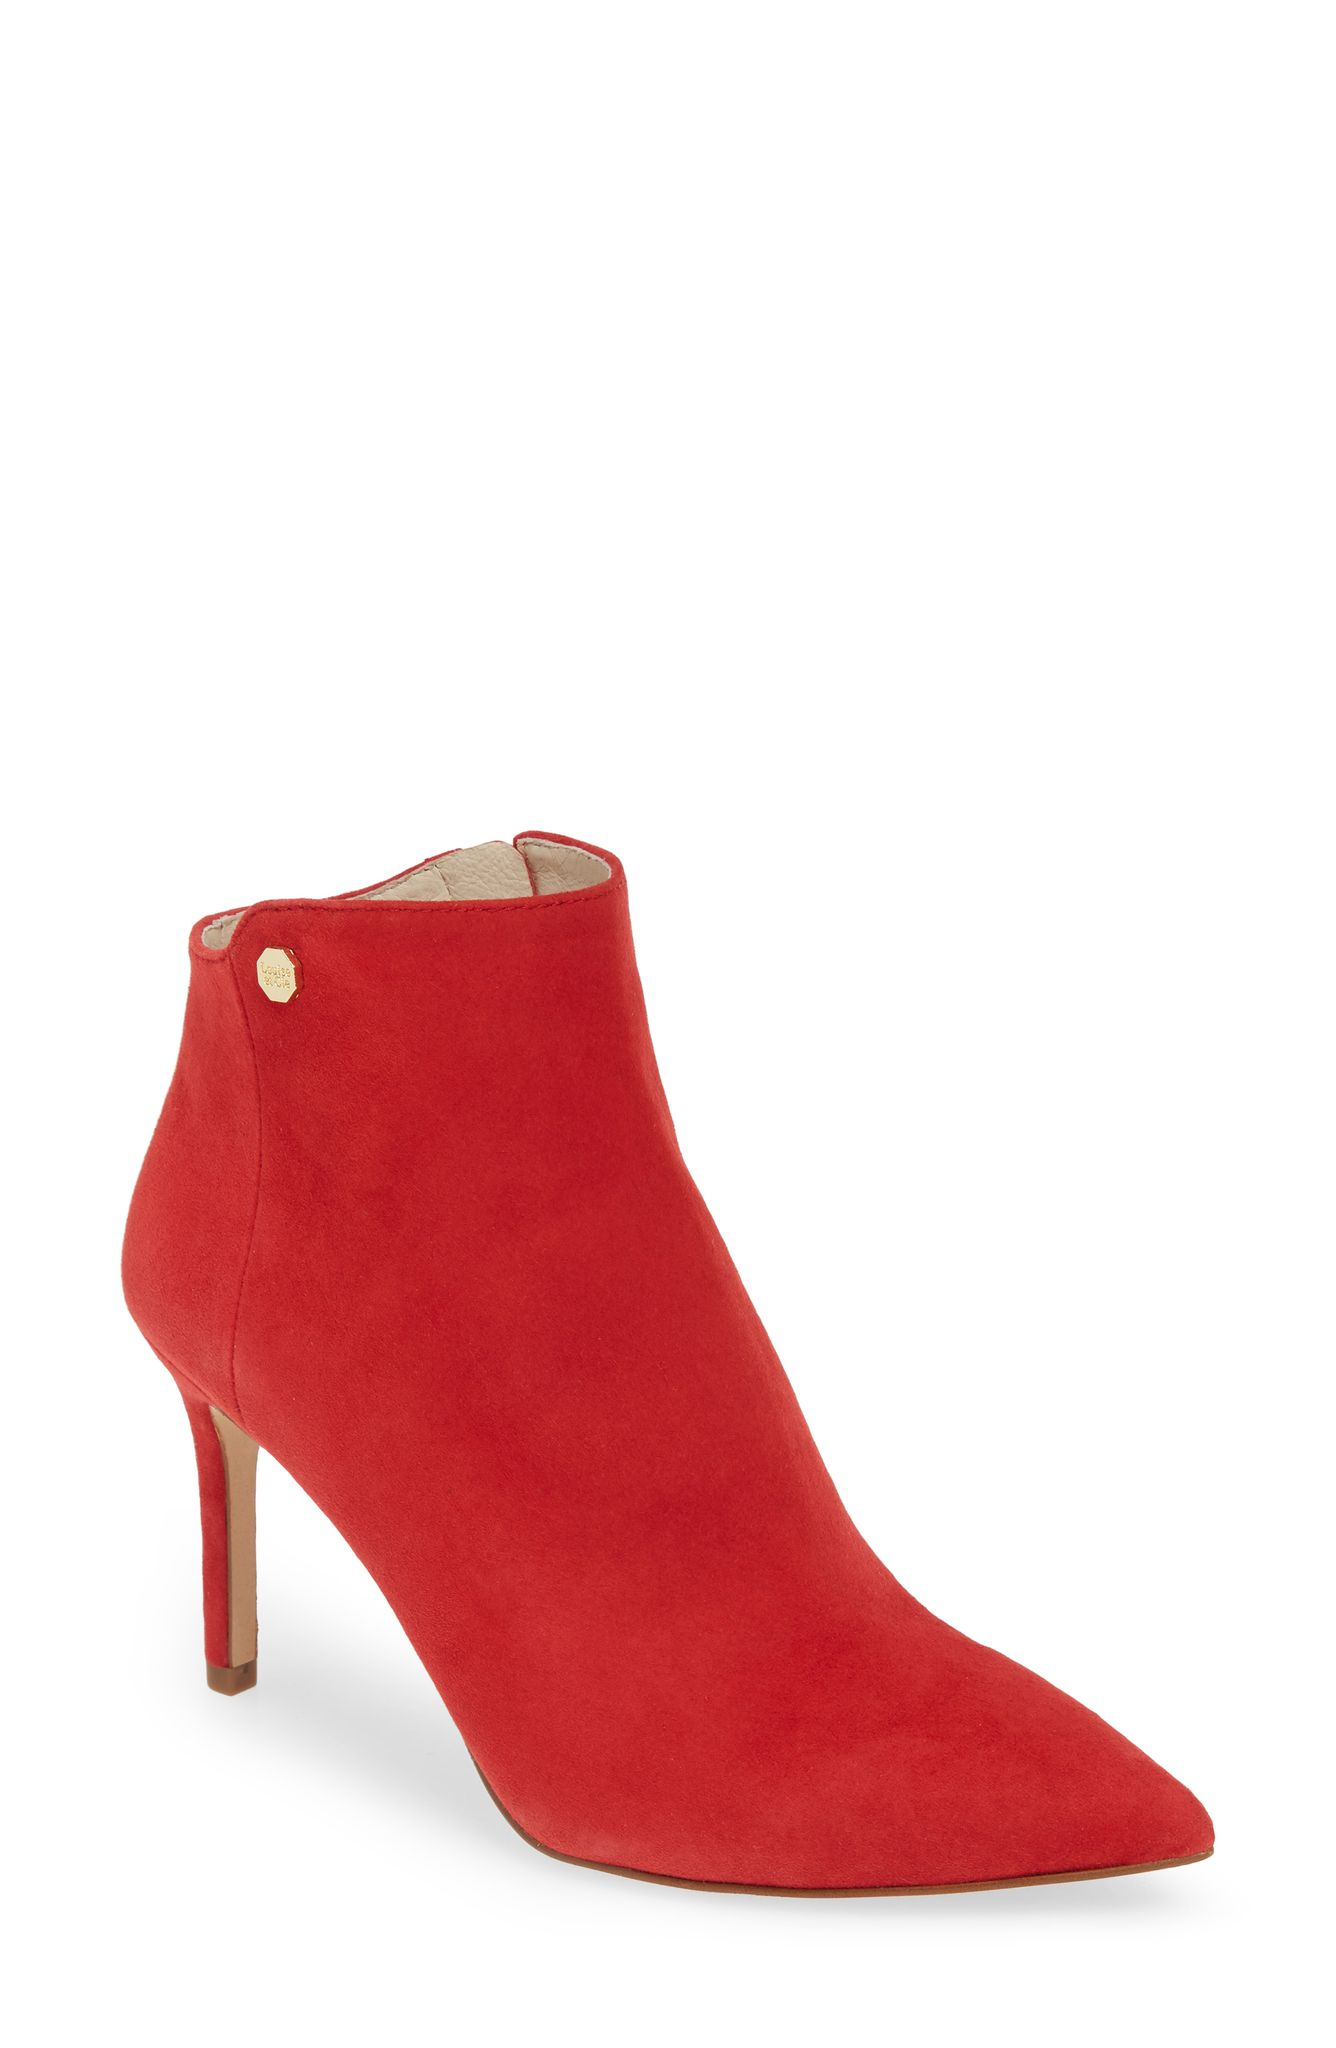 Louise et Cie Sid Heeled Bootie (normally $149.95): NOW $99.90 (Image: Nordstrom)<p></p>